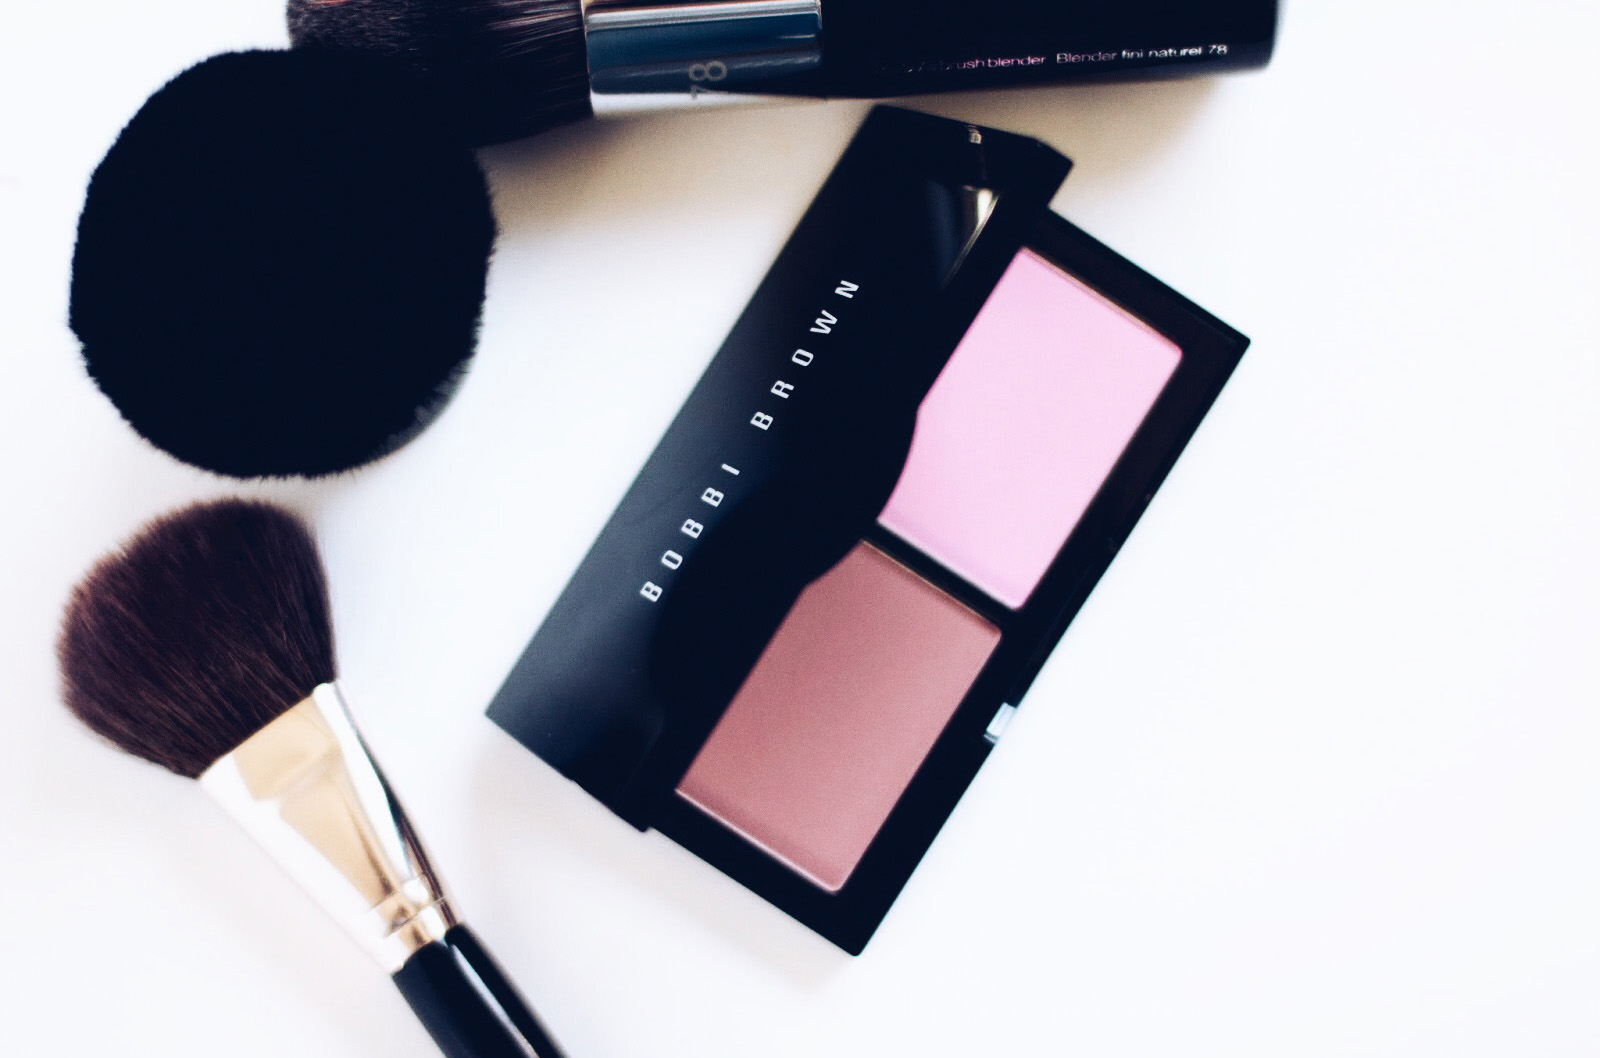 bobbi brown blush duo sand pink pale pink avis test swatches